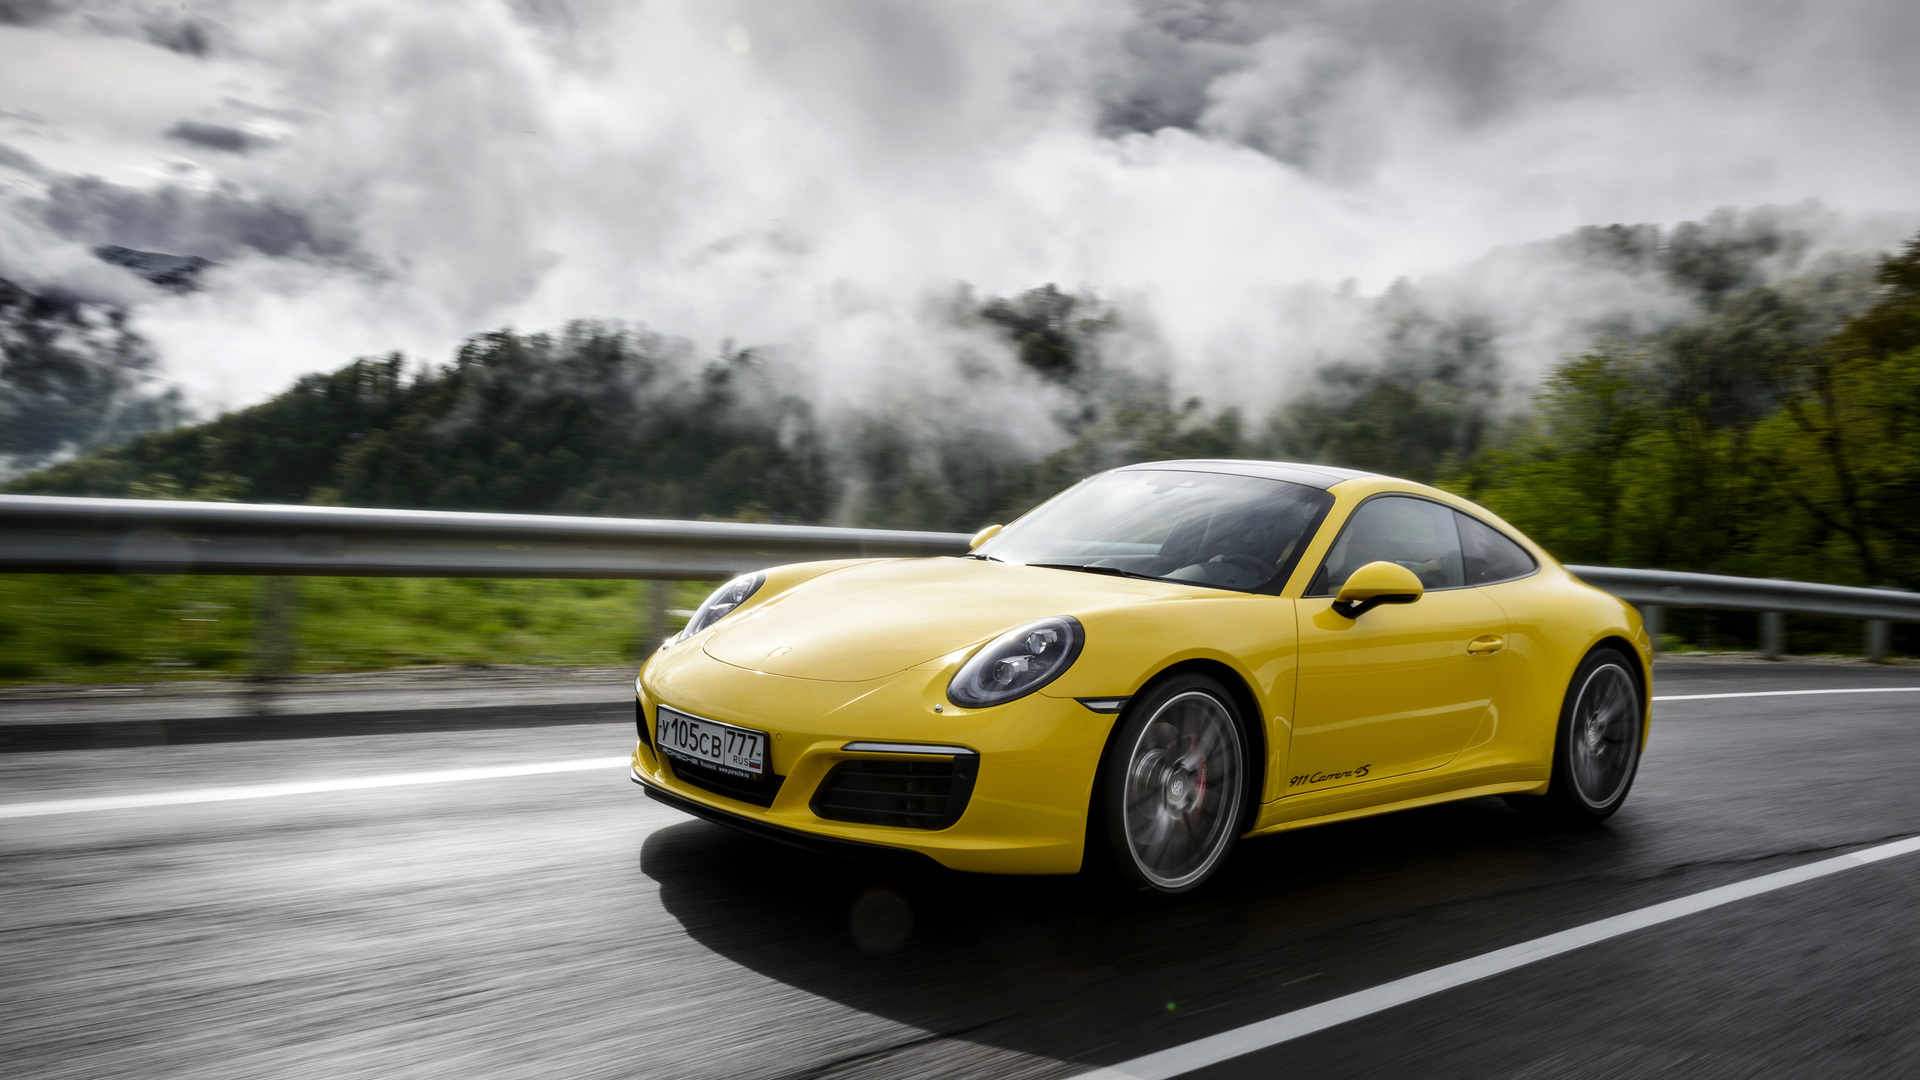 Porsche Hd Wallpapers 1080p: 1920x1080 Porsche 911 Carrera 4S Laptop Full HD 1080P HD